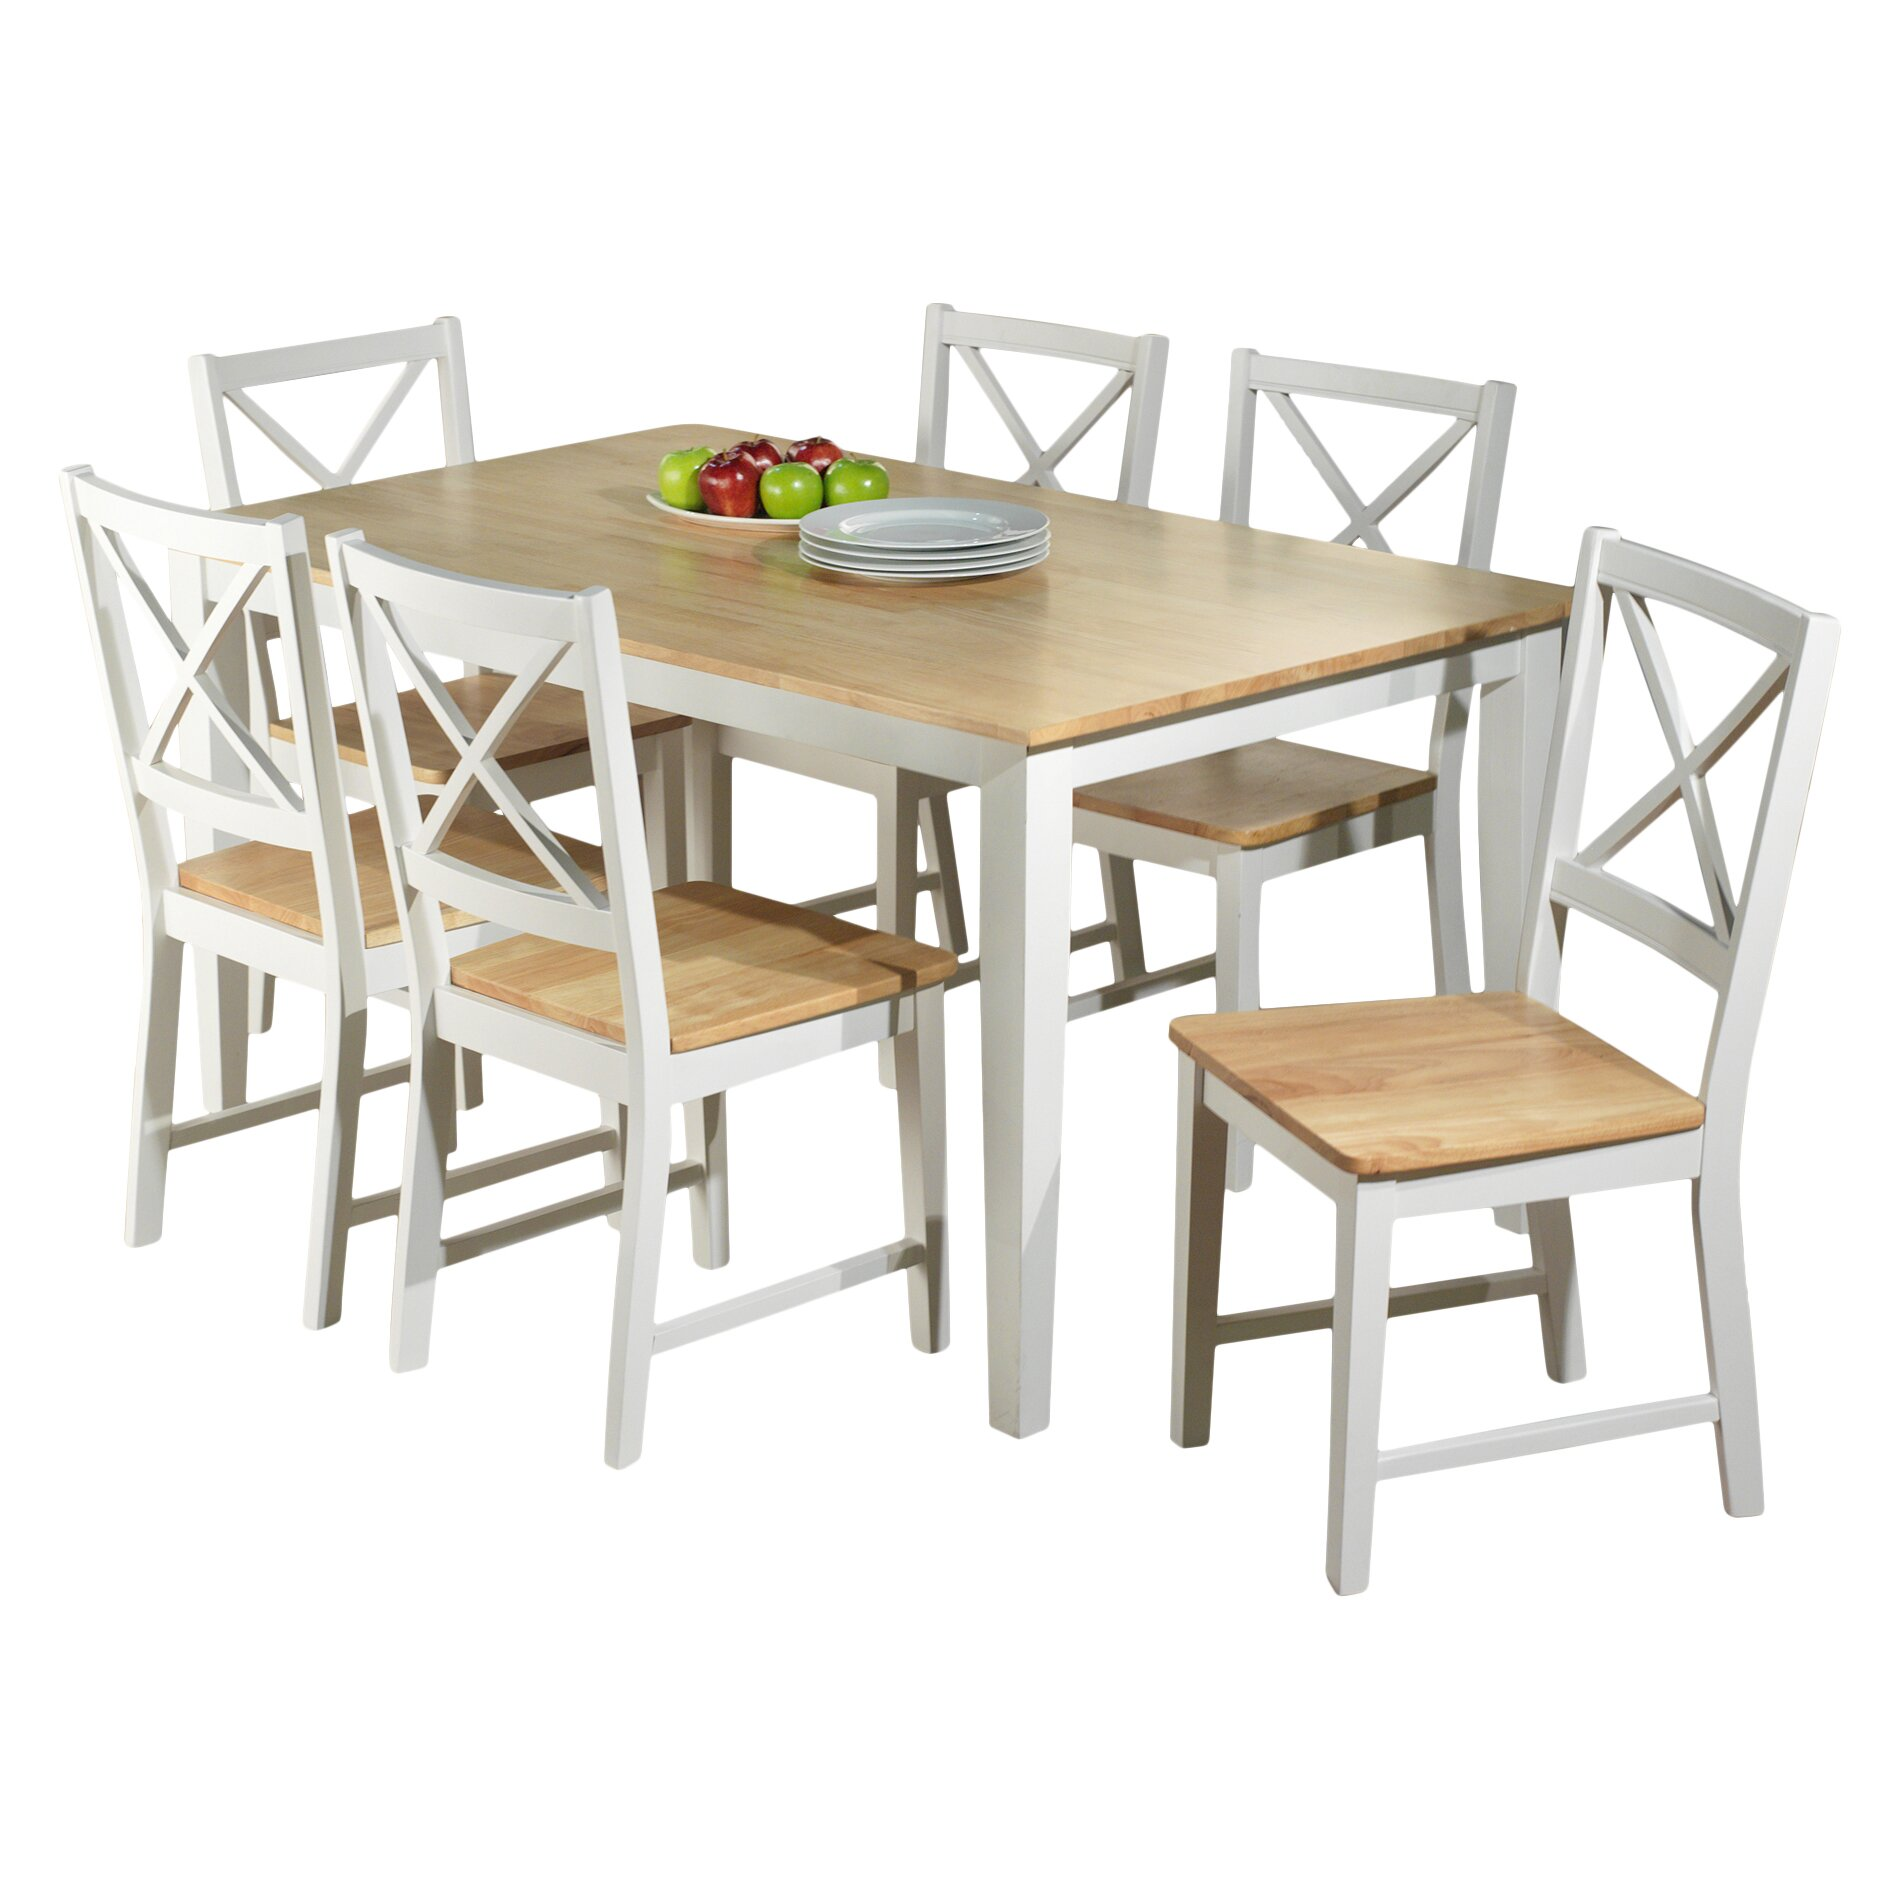 Beachcrest home lafayette 7 piece dining set reviews for 2 piece dining room set